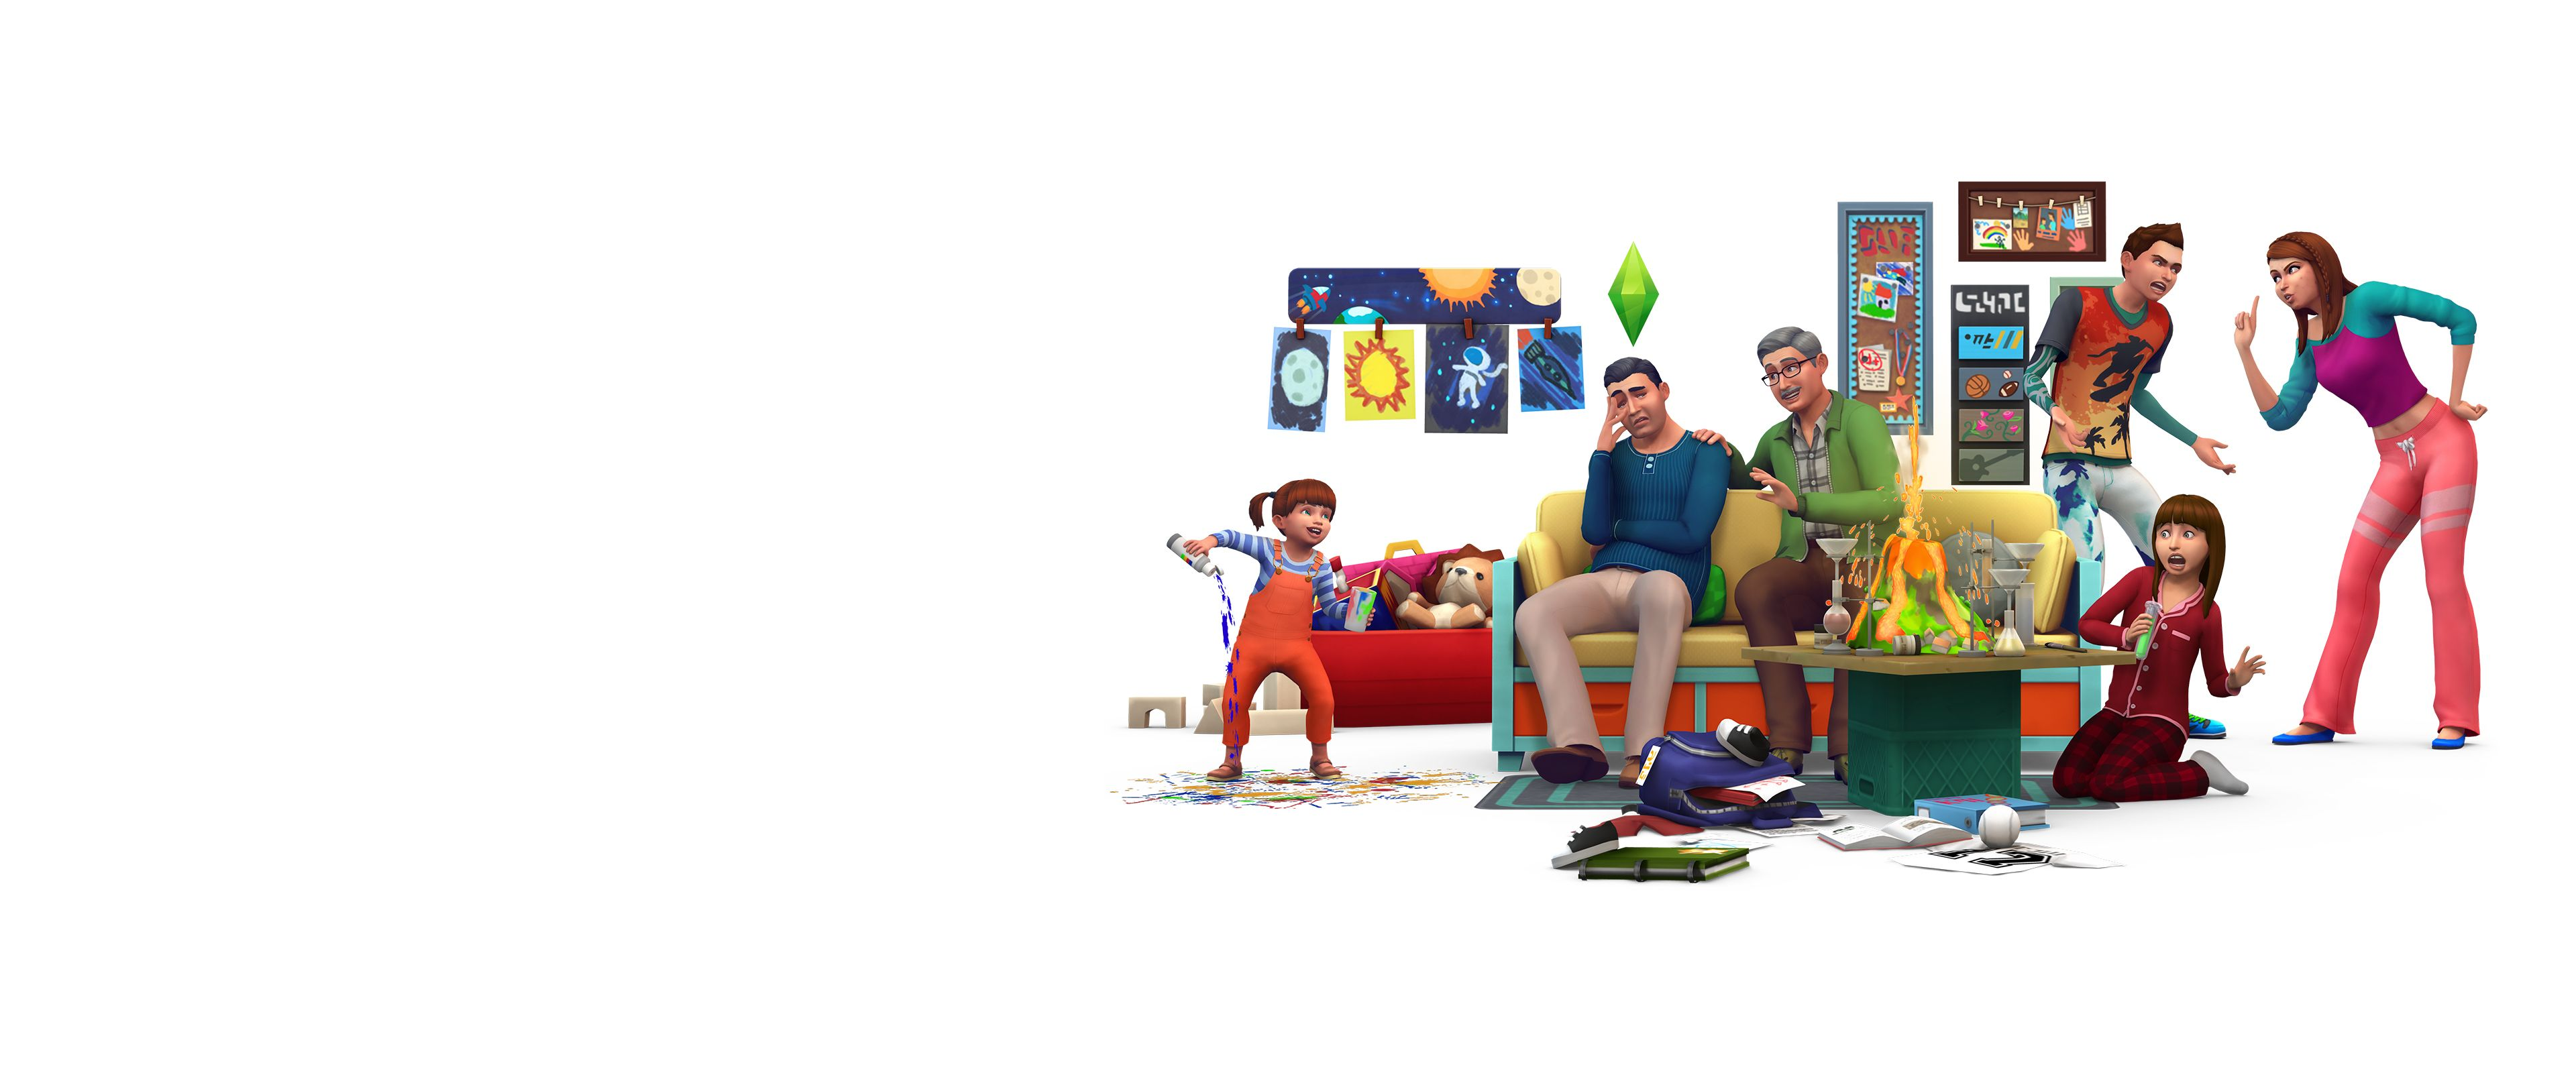 sims 4 free download for windows vista